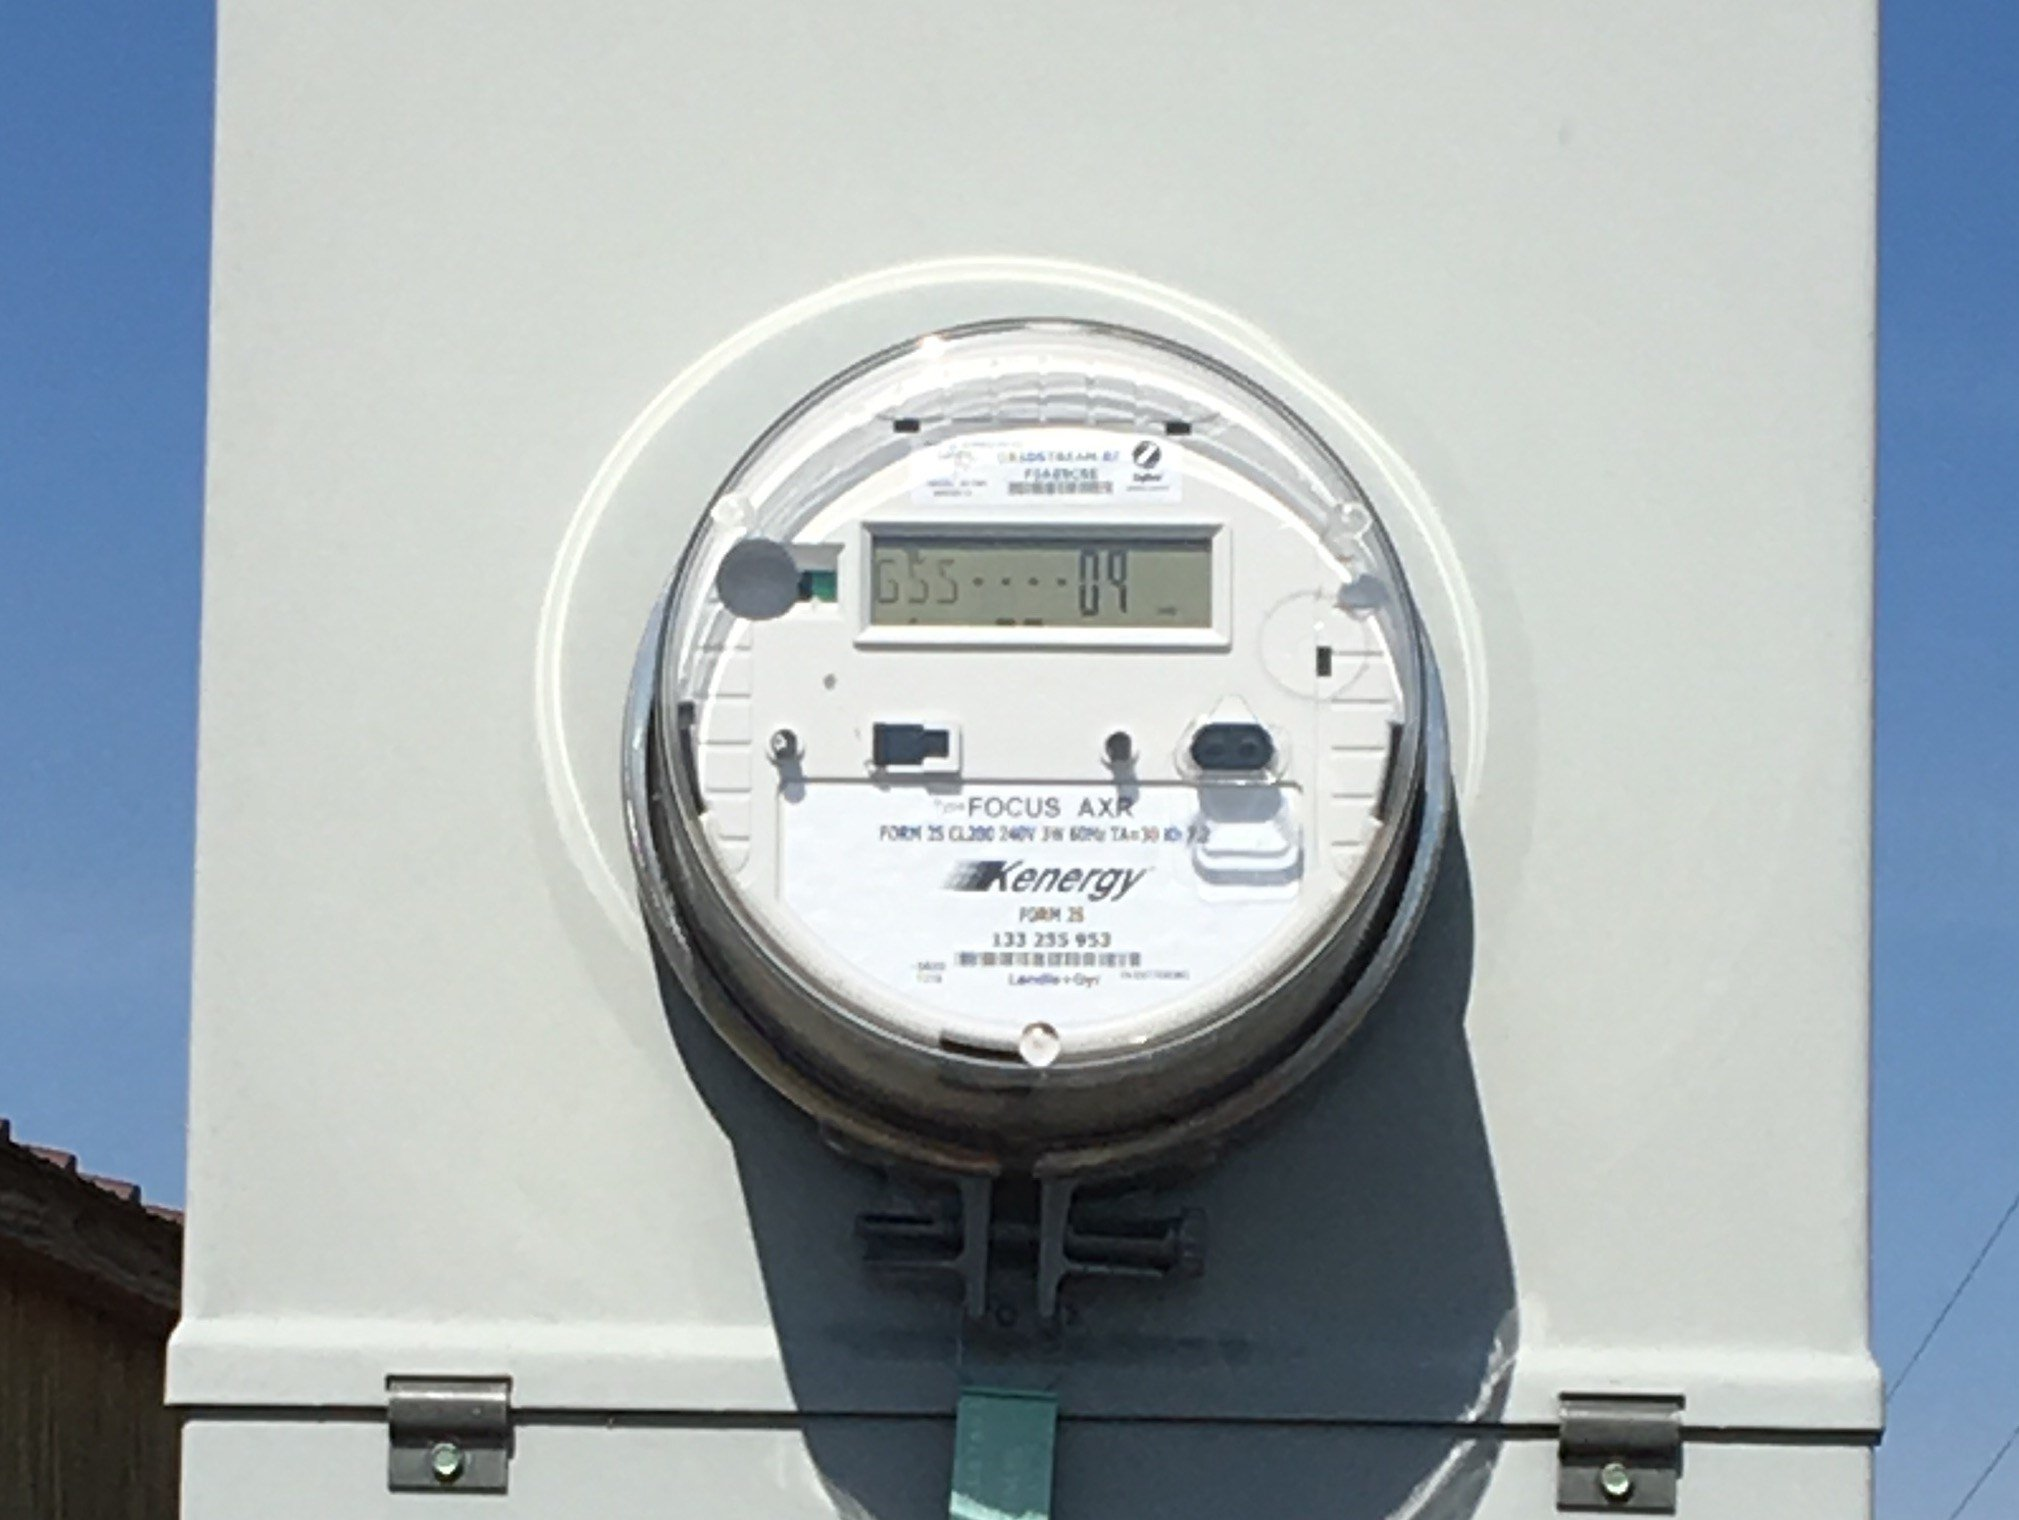 People in the Local 6 area have seen their electric bills increase and believe it could have something to do with smart meters like this one.